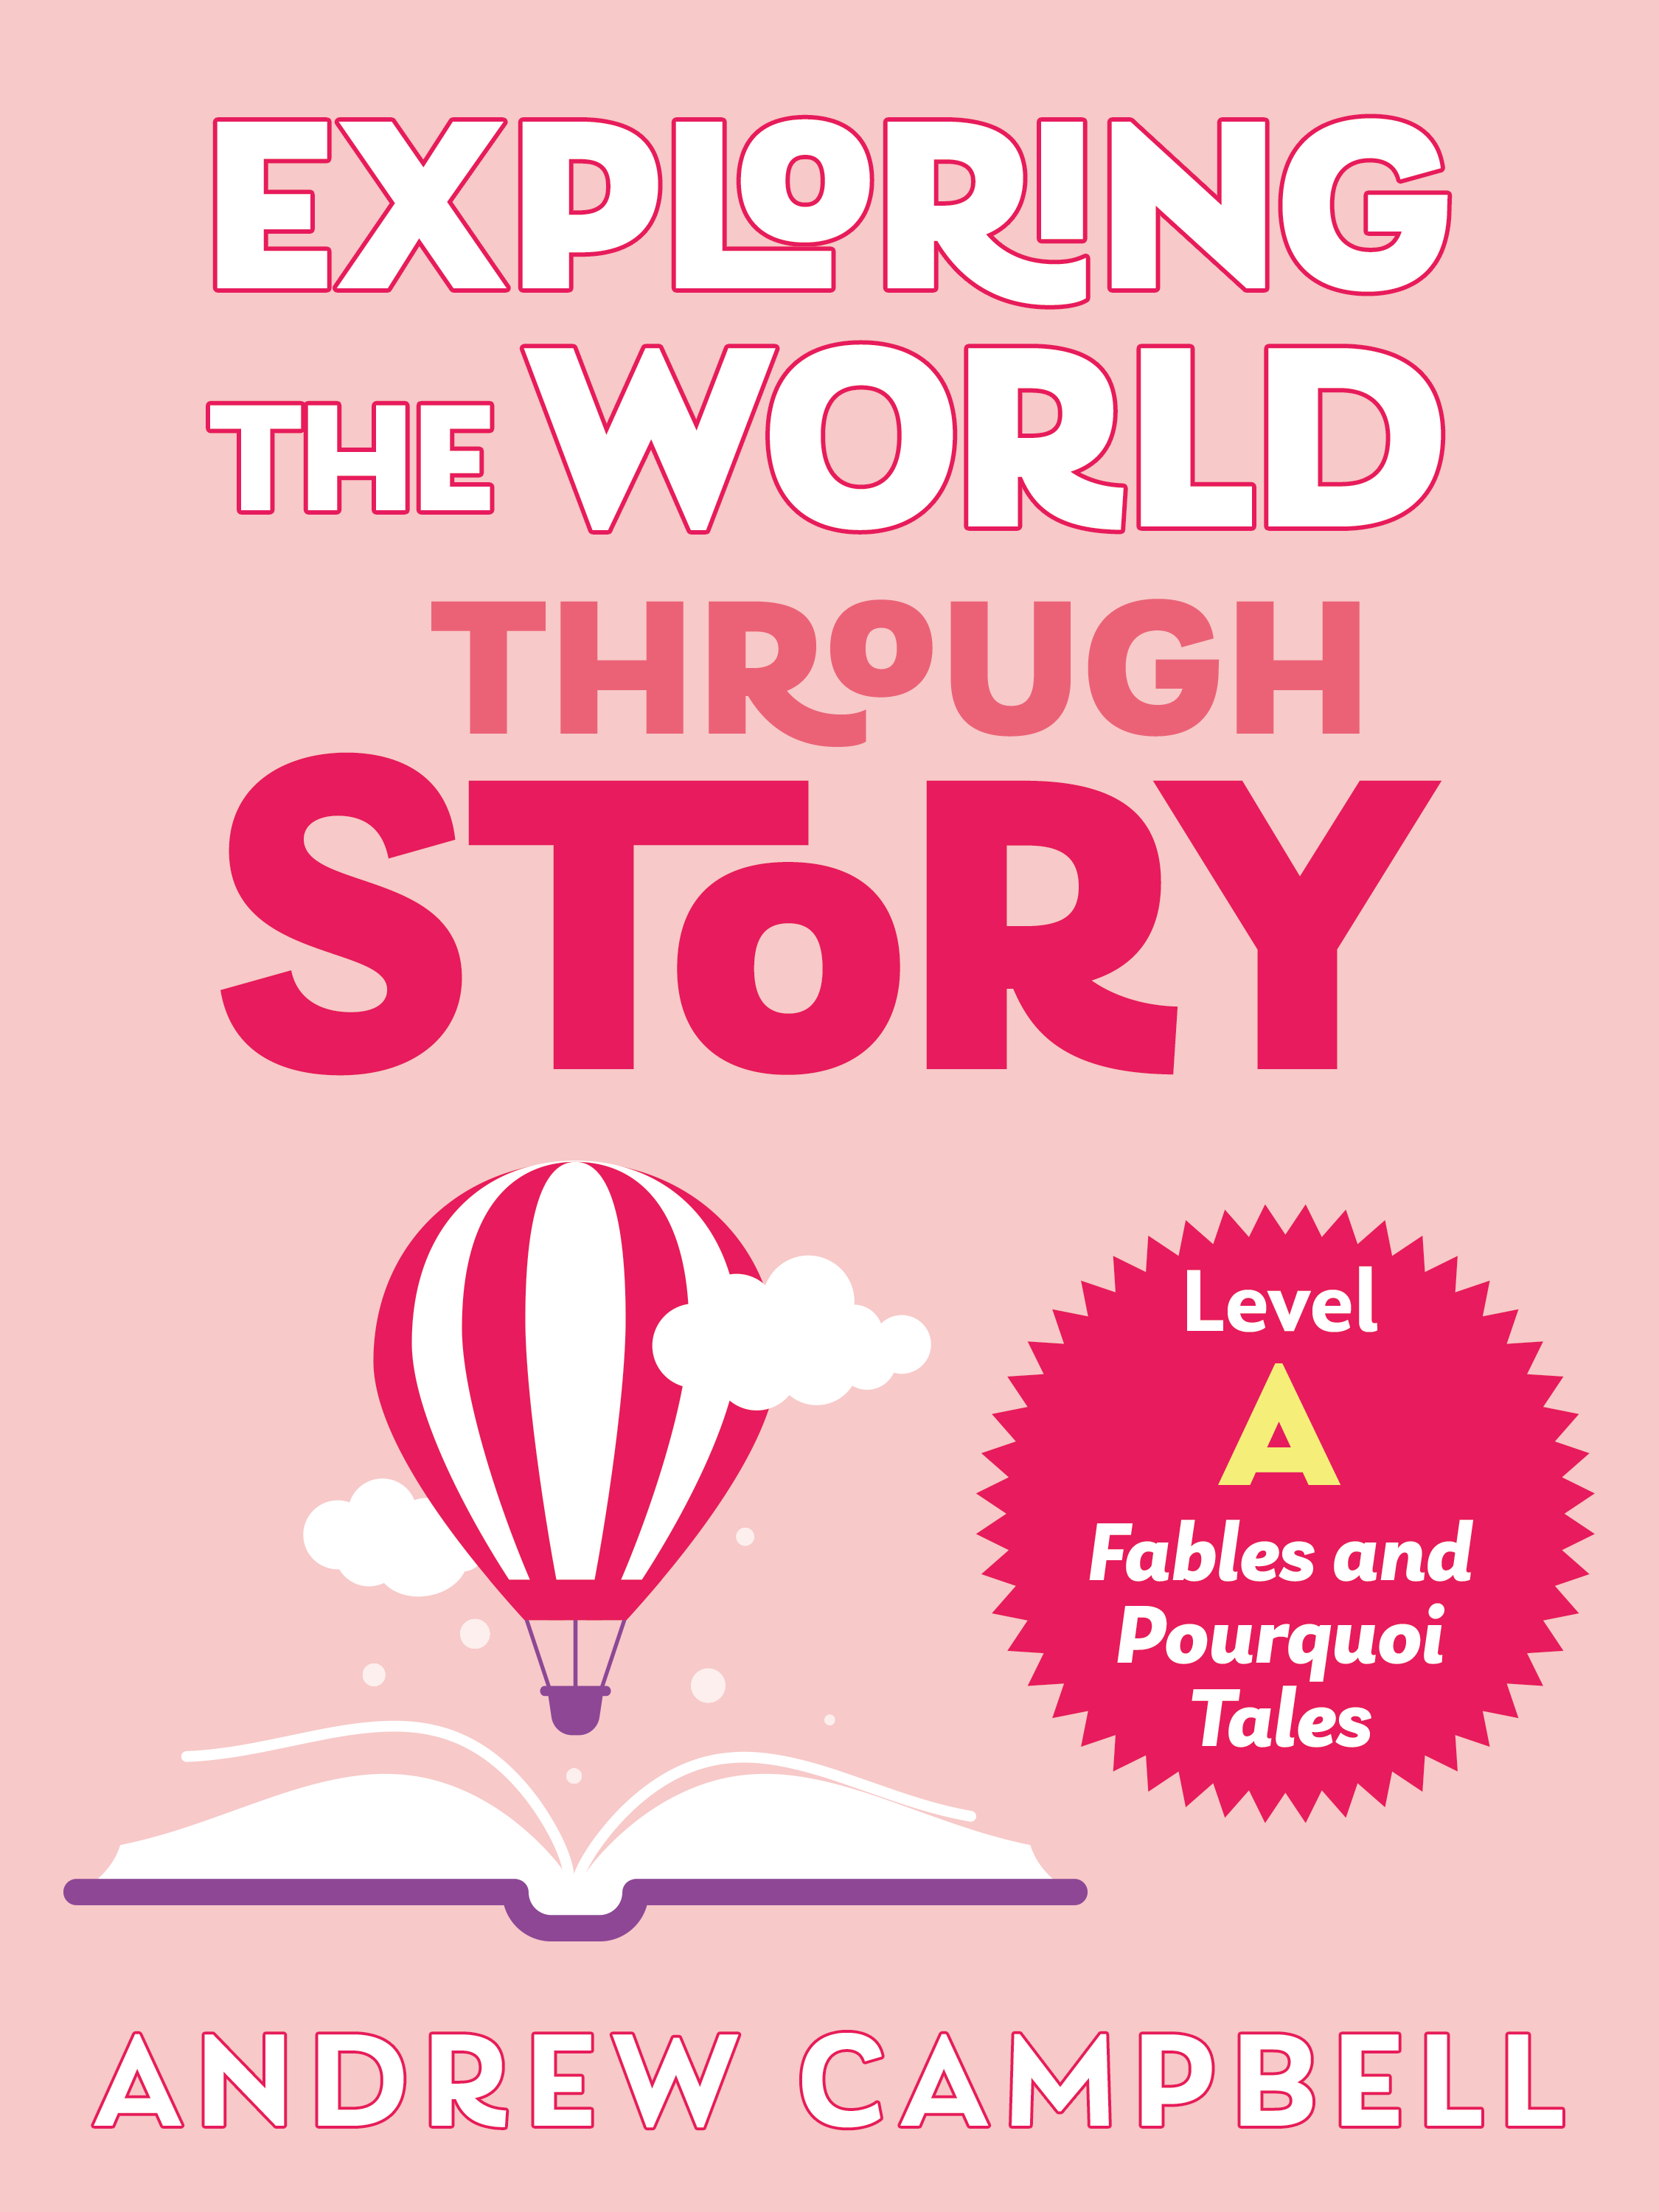 Exploring the World through Story, Level A